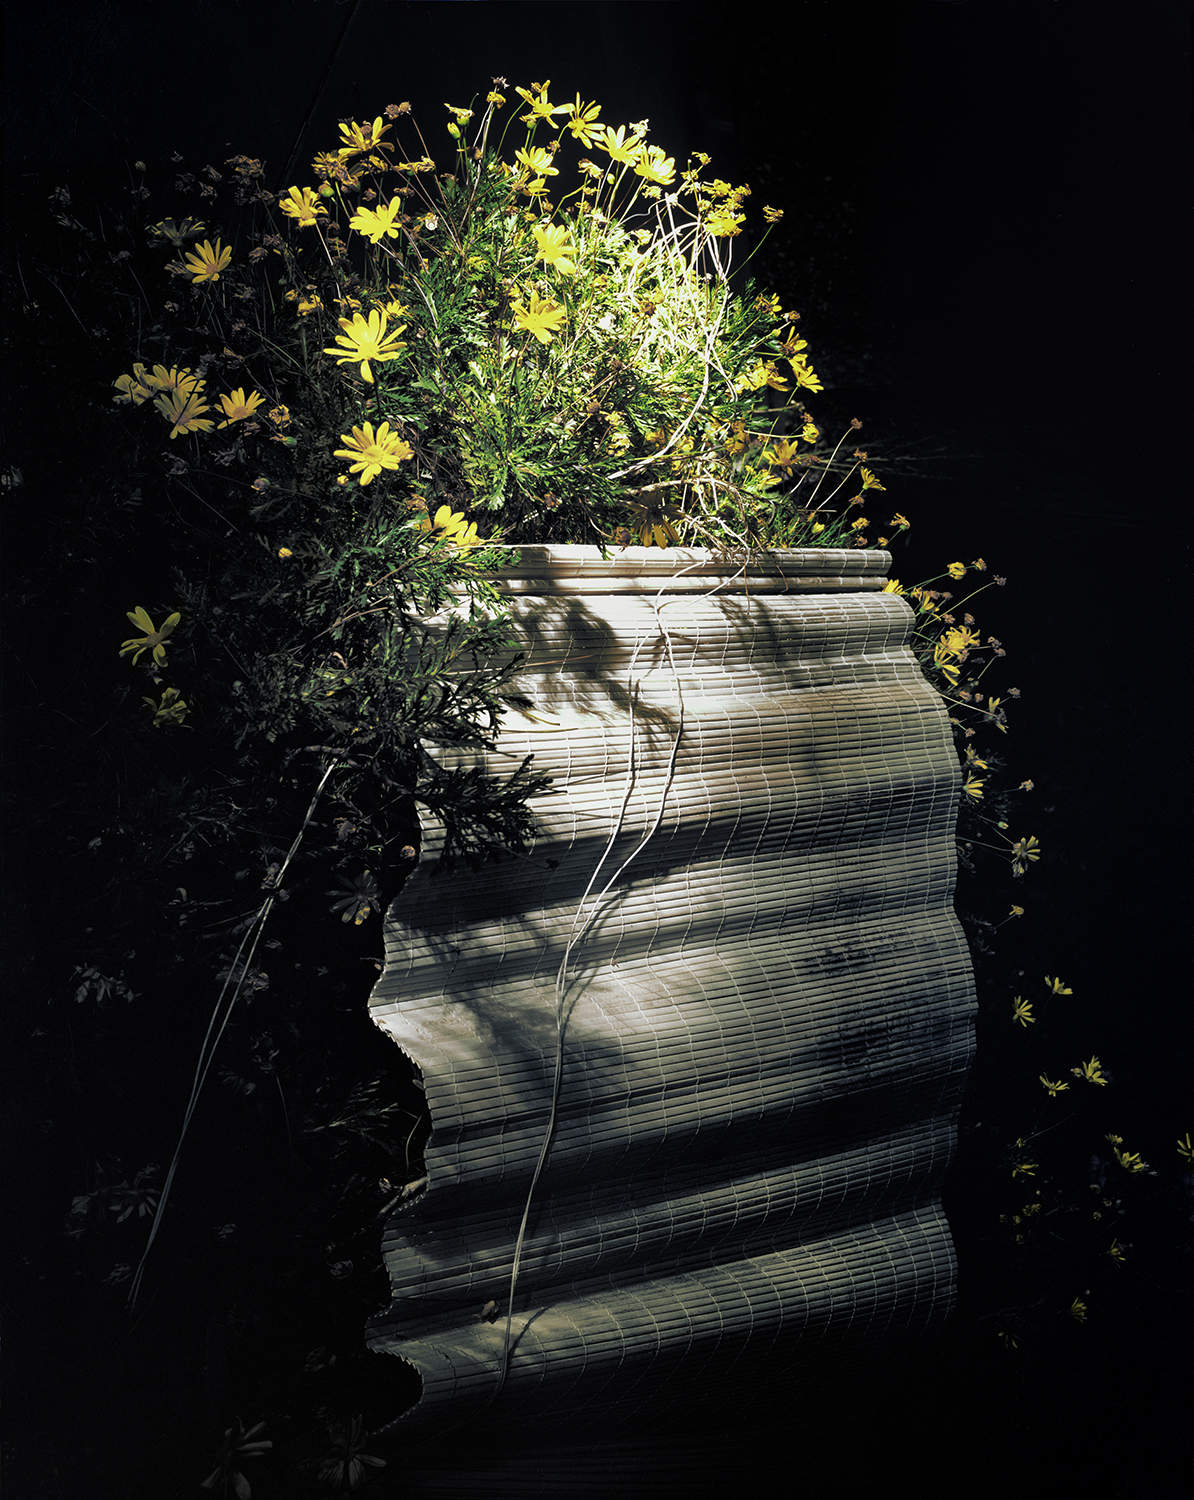 Daisy Shade , 2012 Archival pigment print 40 x 32 inches   ————